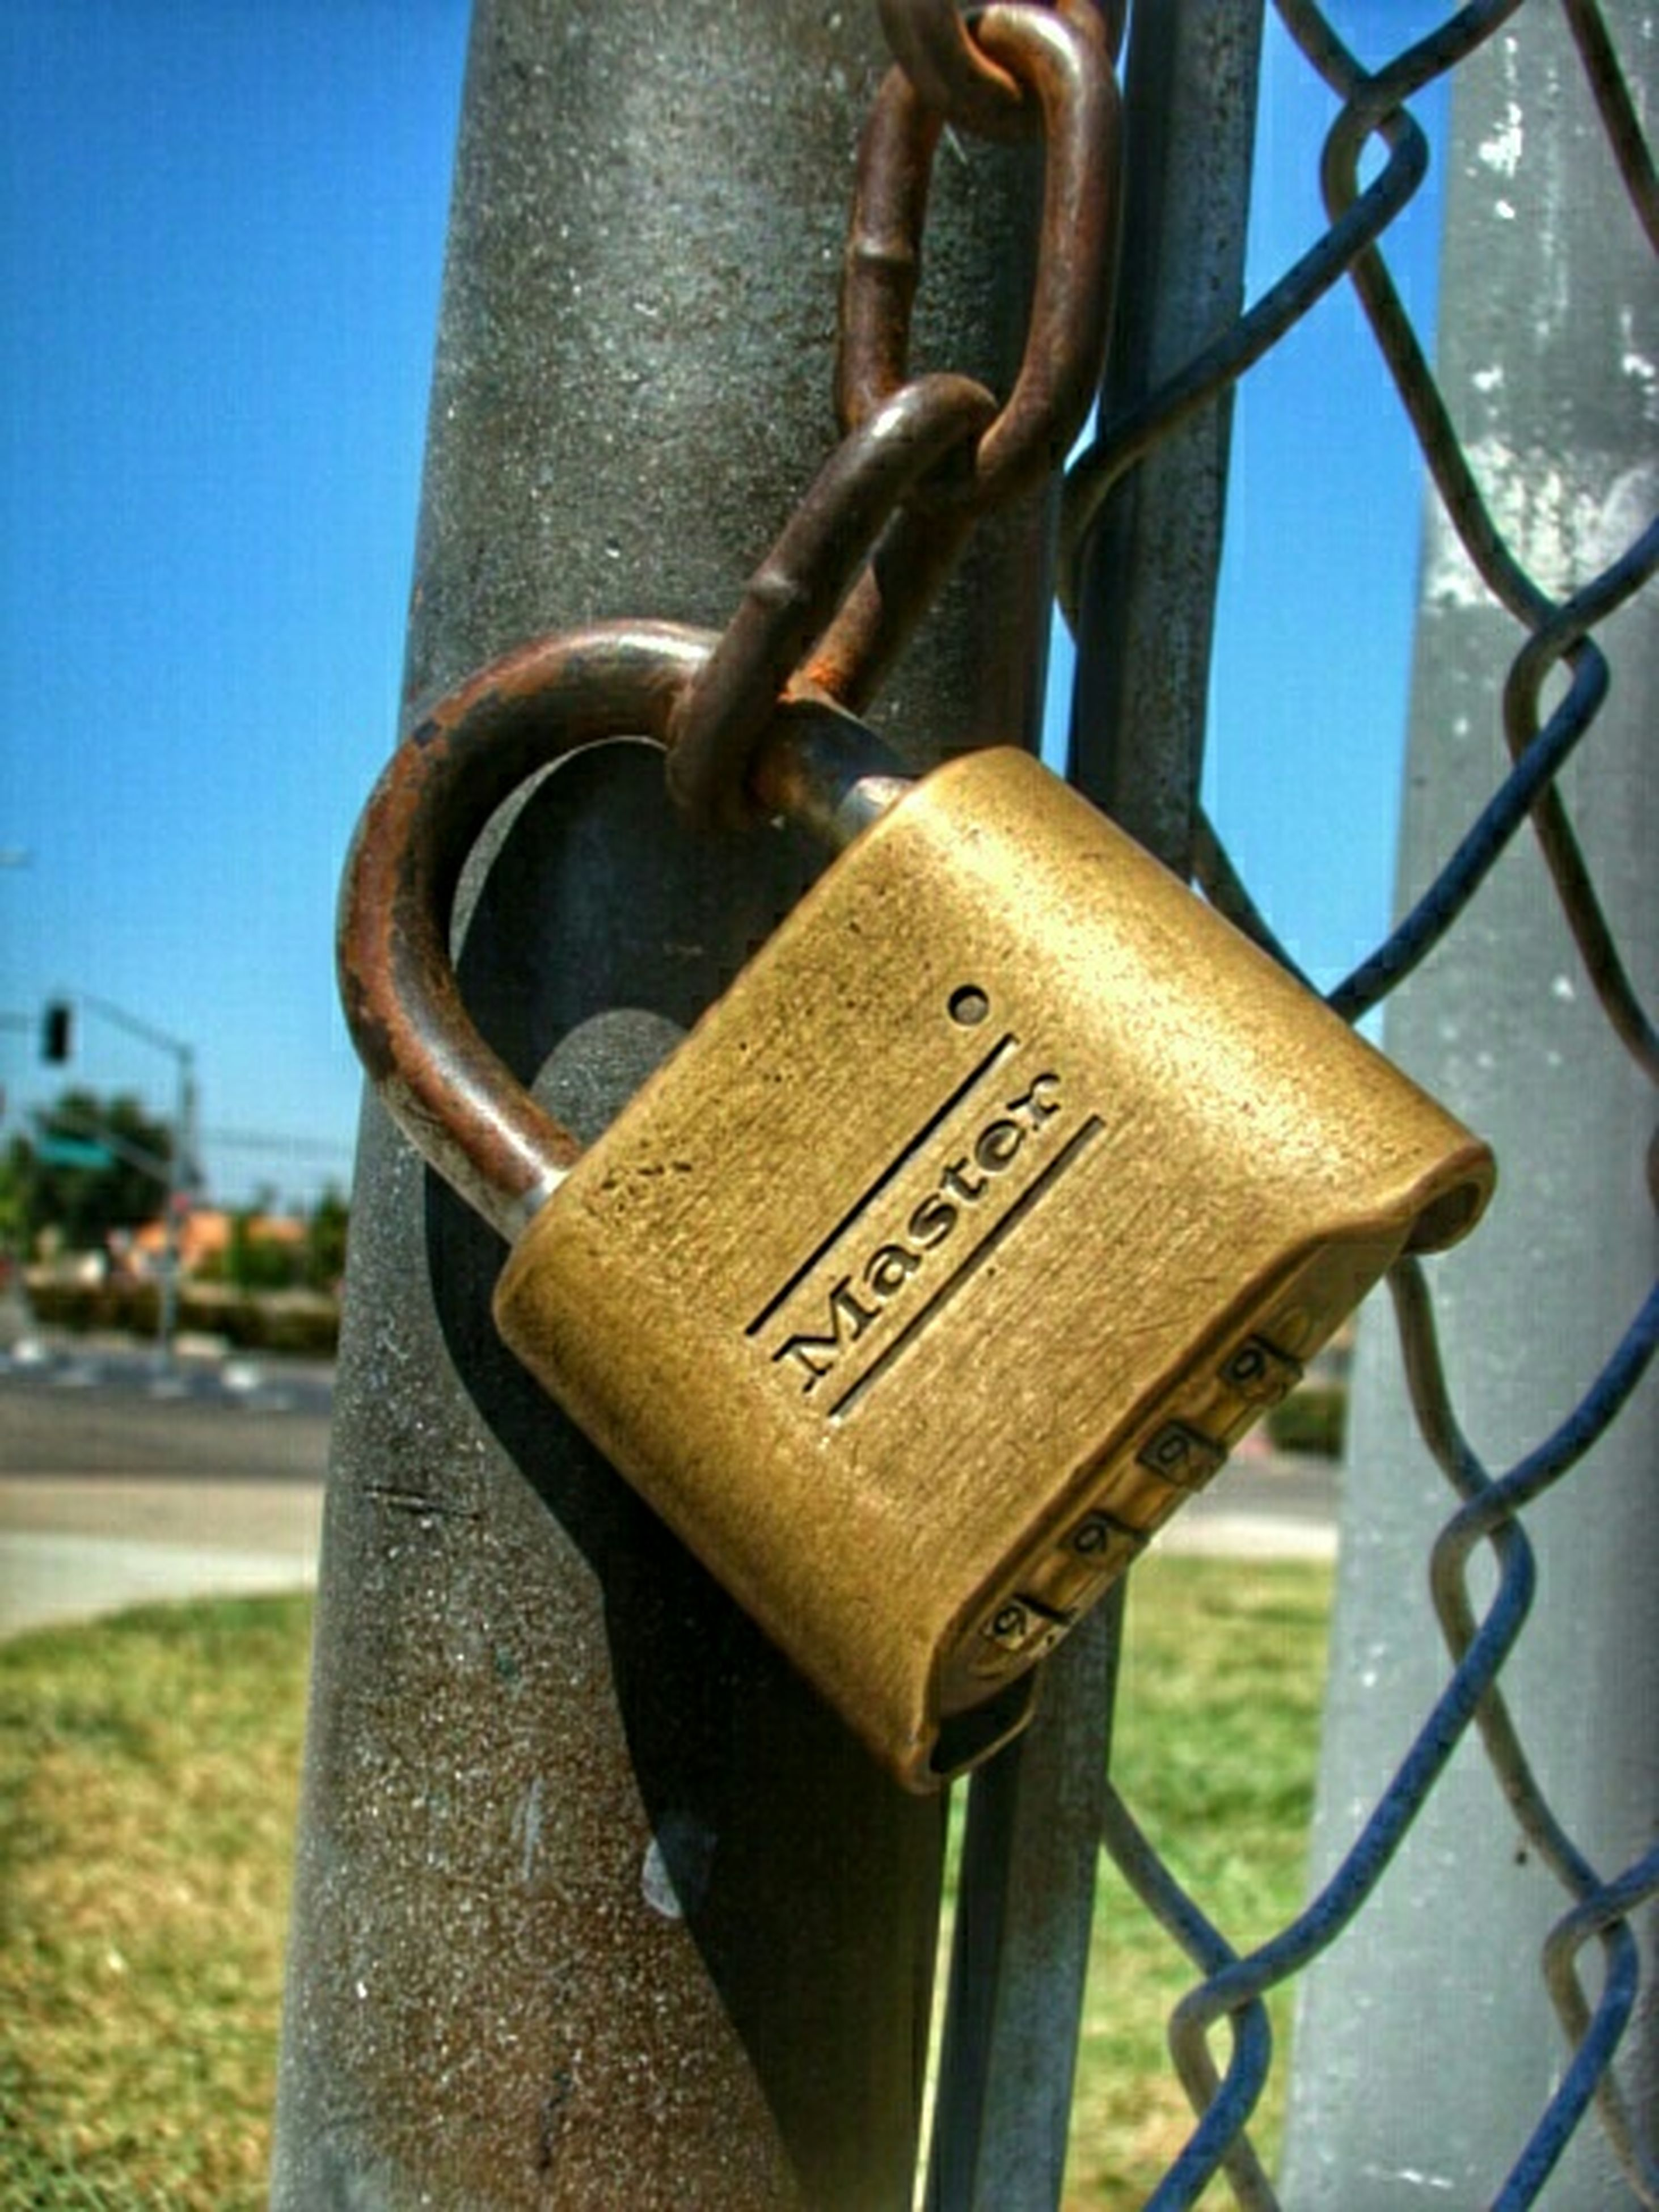 metal, focus on foreground, close-up, metallic, rusty, padlock, safety, security, chain, protection, lock, text, communication, attached, old, fence, day, connection, western script, hanging